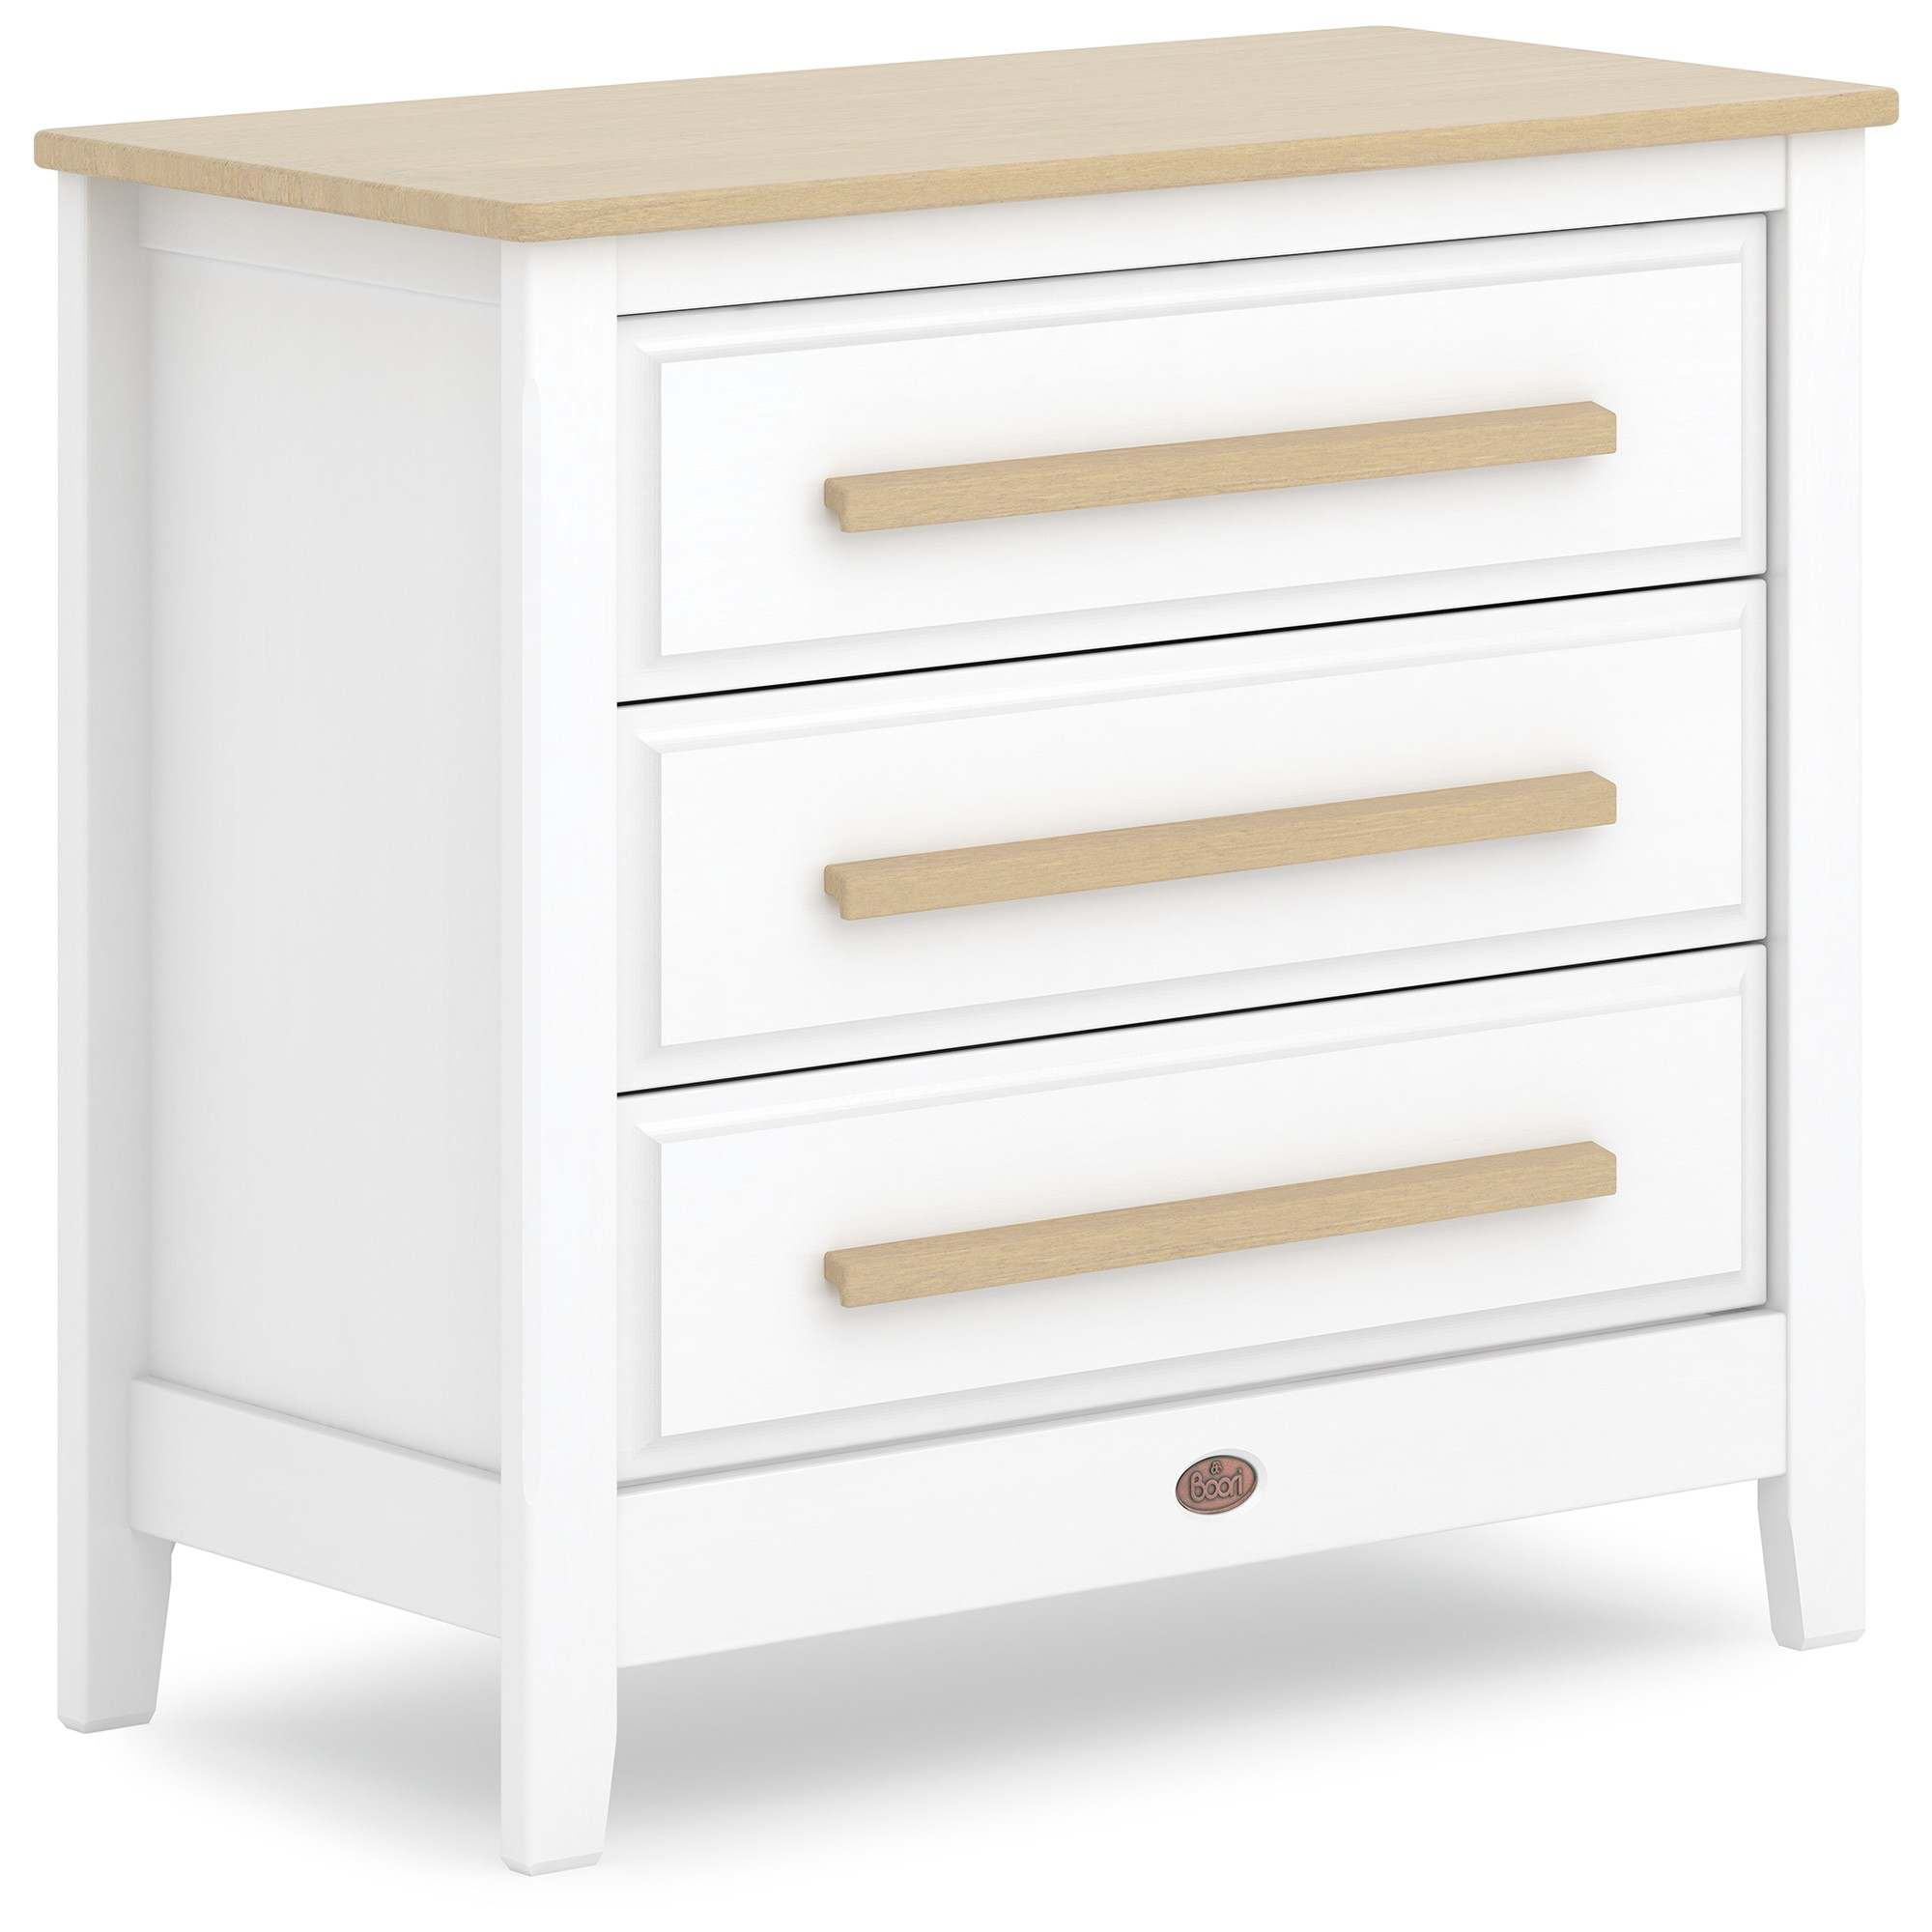 Boori Linear Wooden 3 Drawer Chest, Barley White / Almond